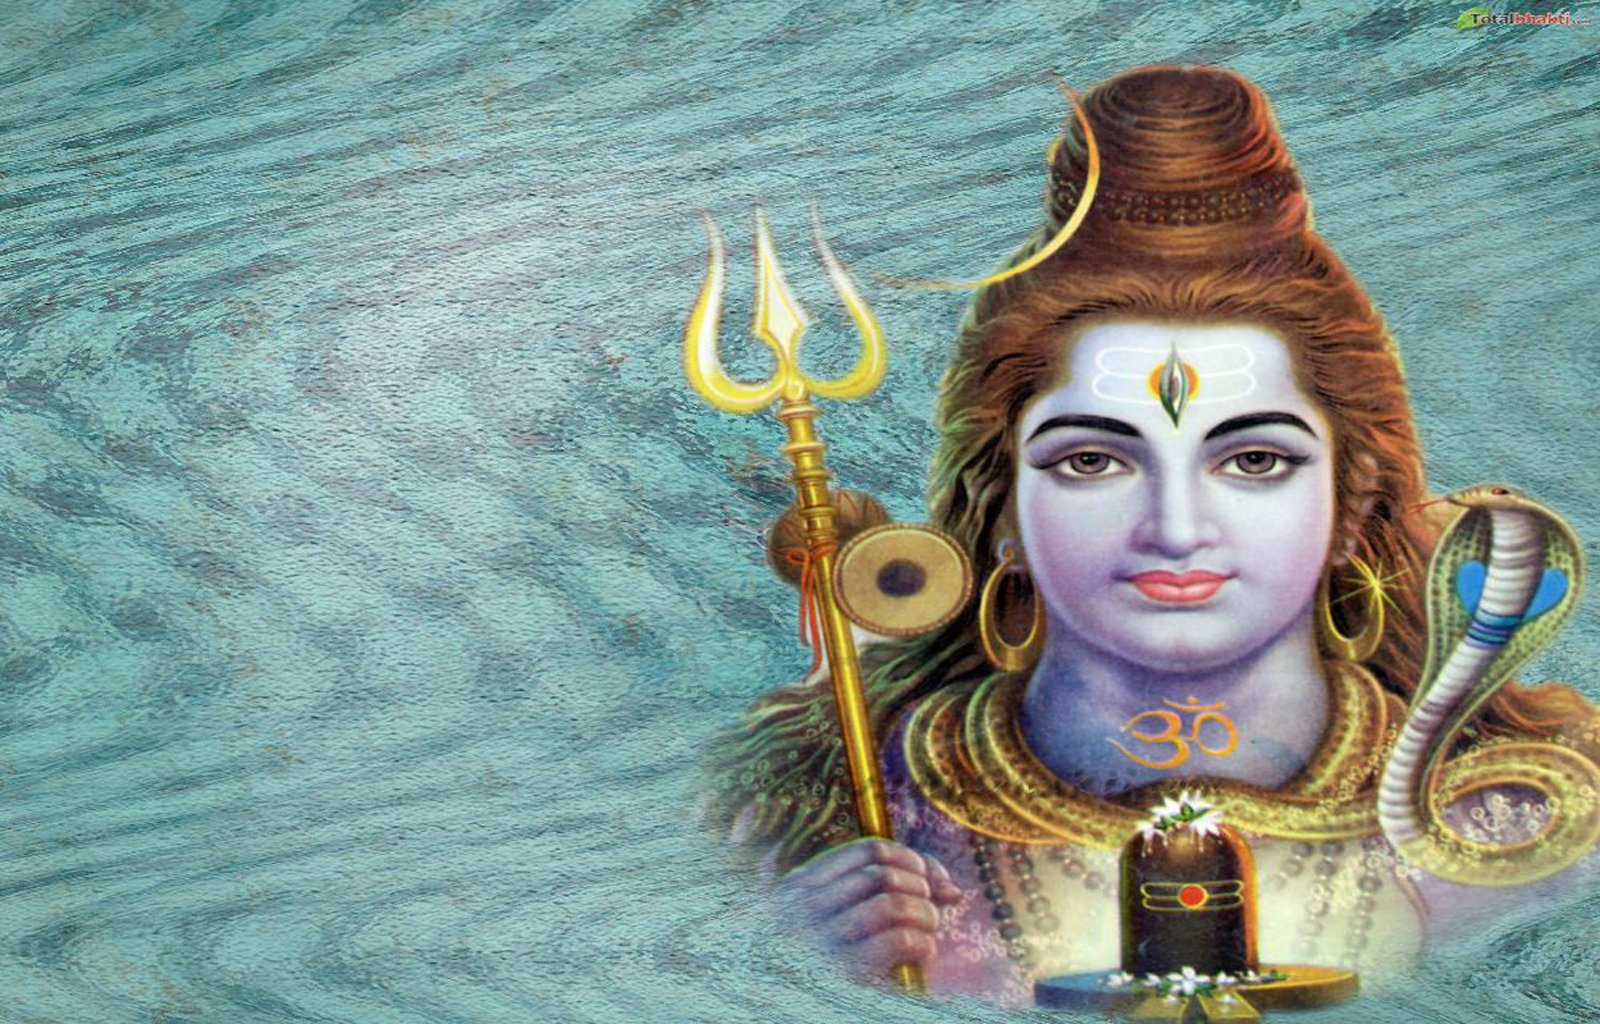 Wallpaper Gallery: Lord Shiva Wallpaper - 3